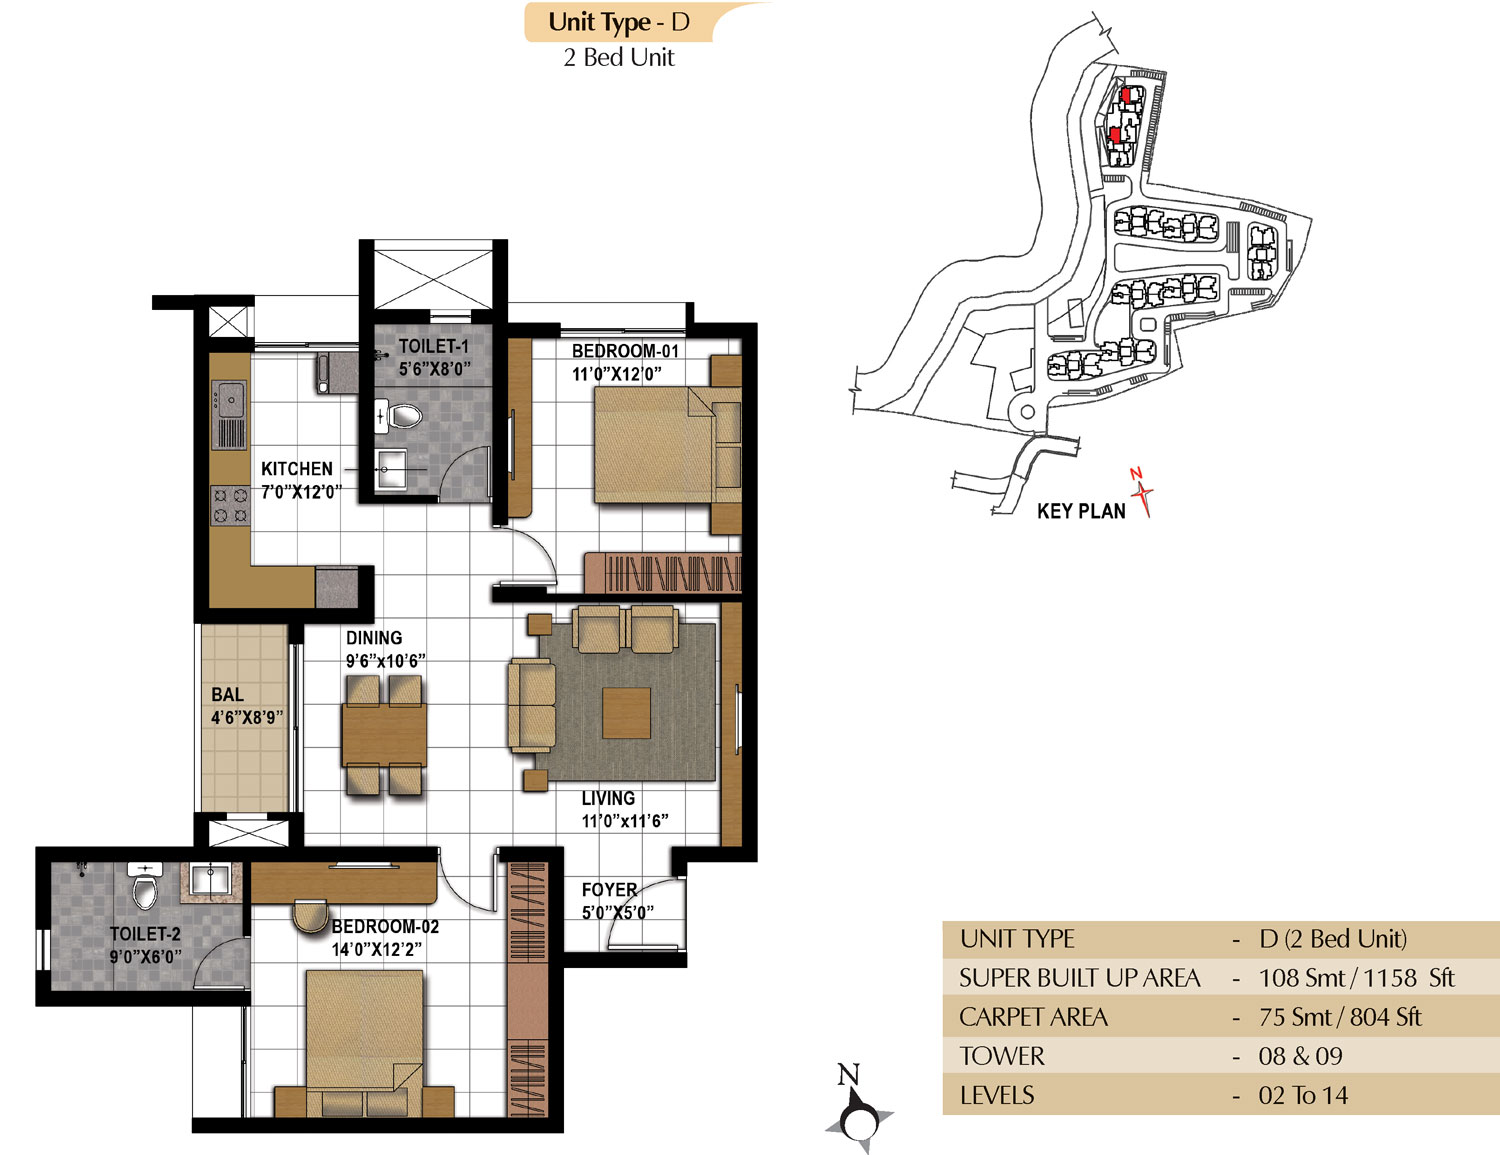 Type D - 2 Bed - 1158 Sq Ft